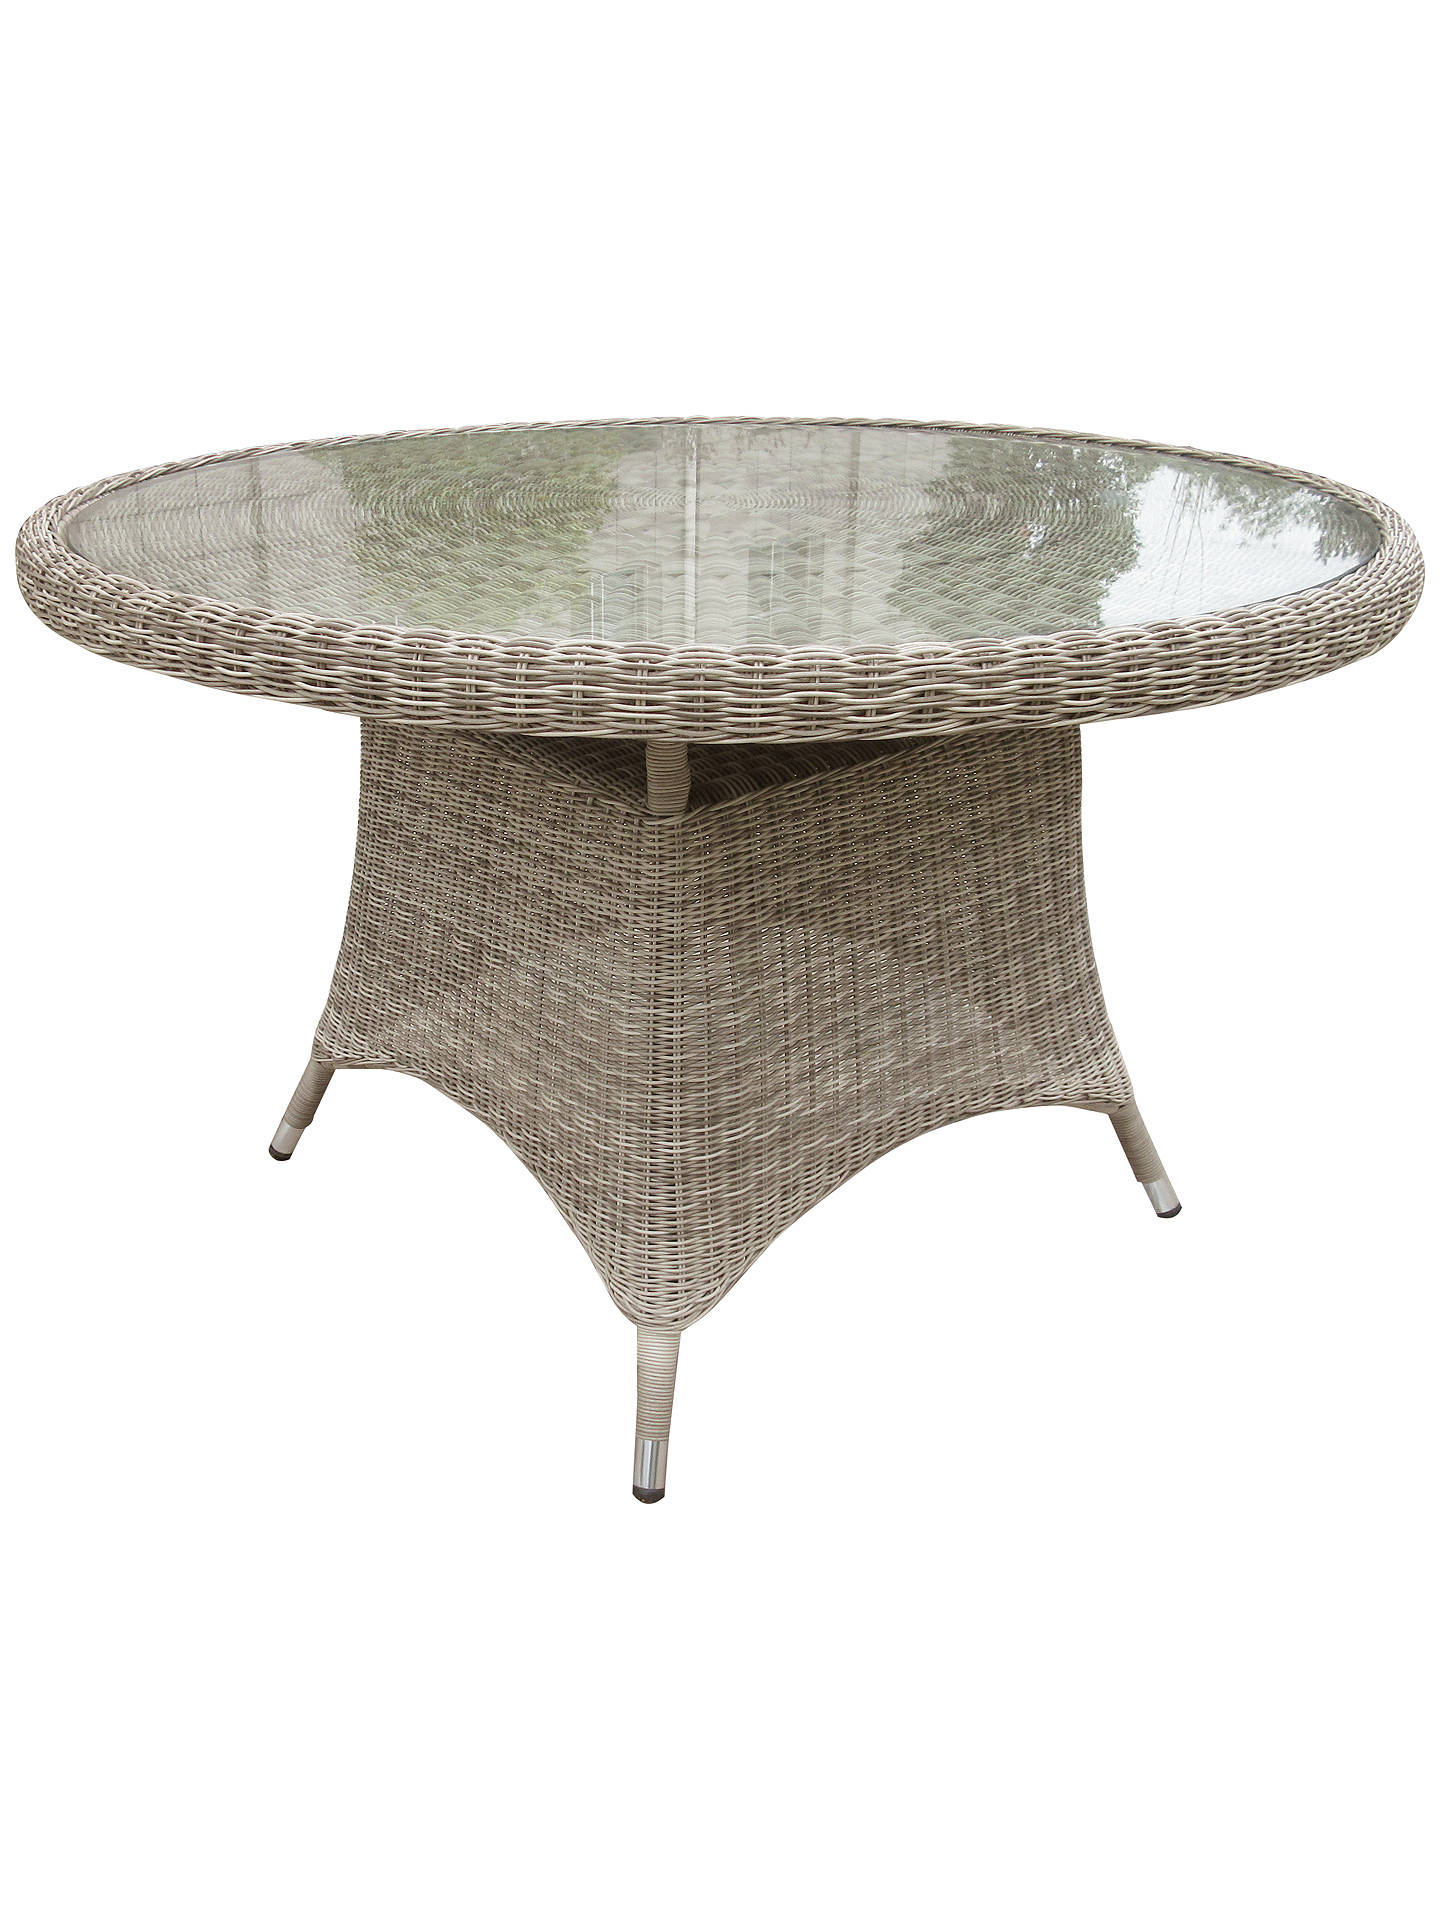 Buy John Lewis & Partners Dante 4-Seat Glass Top Garden Dining Table, Natural Online at johnlewis.com